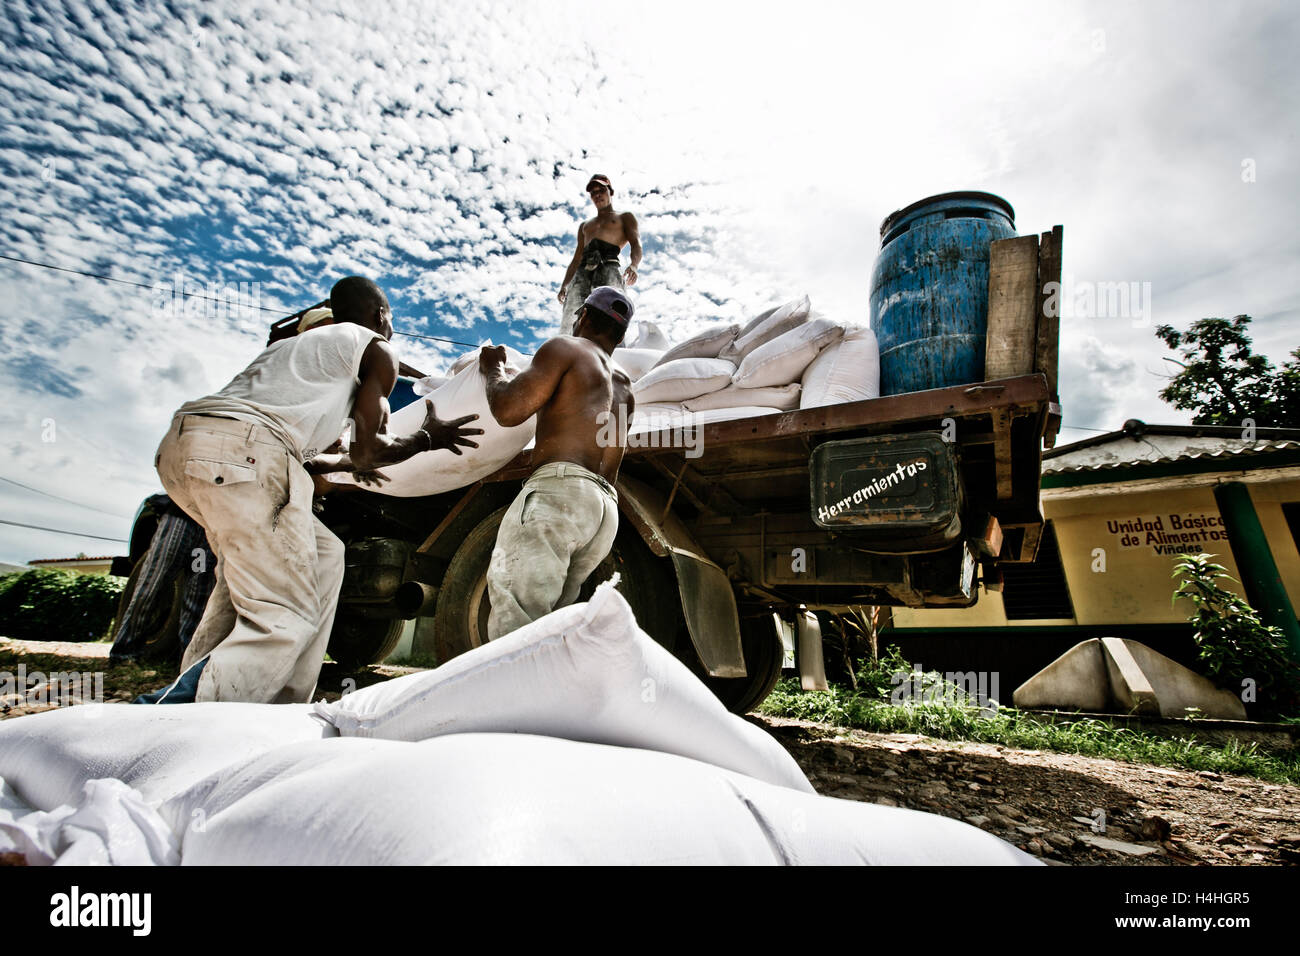 Cubans haulage worker on the truck, Cuba Life - Stock Image